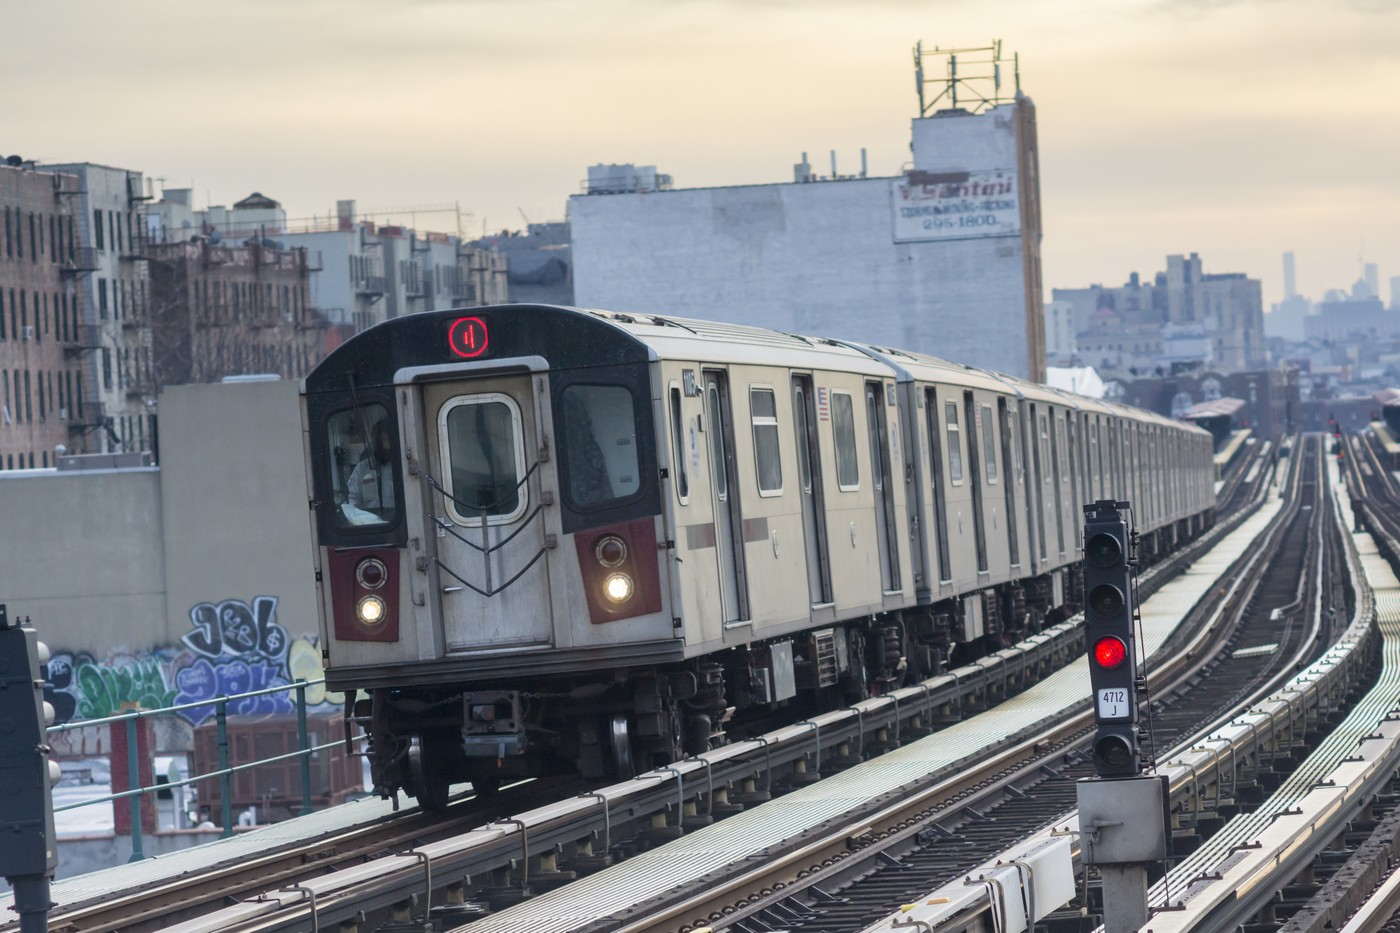 A Number 4 IRT elevated subway train in the Bronx in New York on Thursday, January 7, 2016. (�� Richard B. Levine) (Photo by Richard Levine/Corbis via Getty Images)